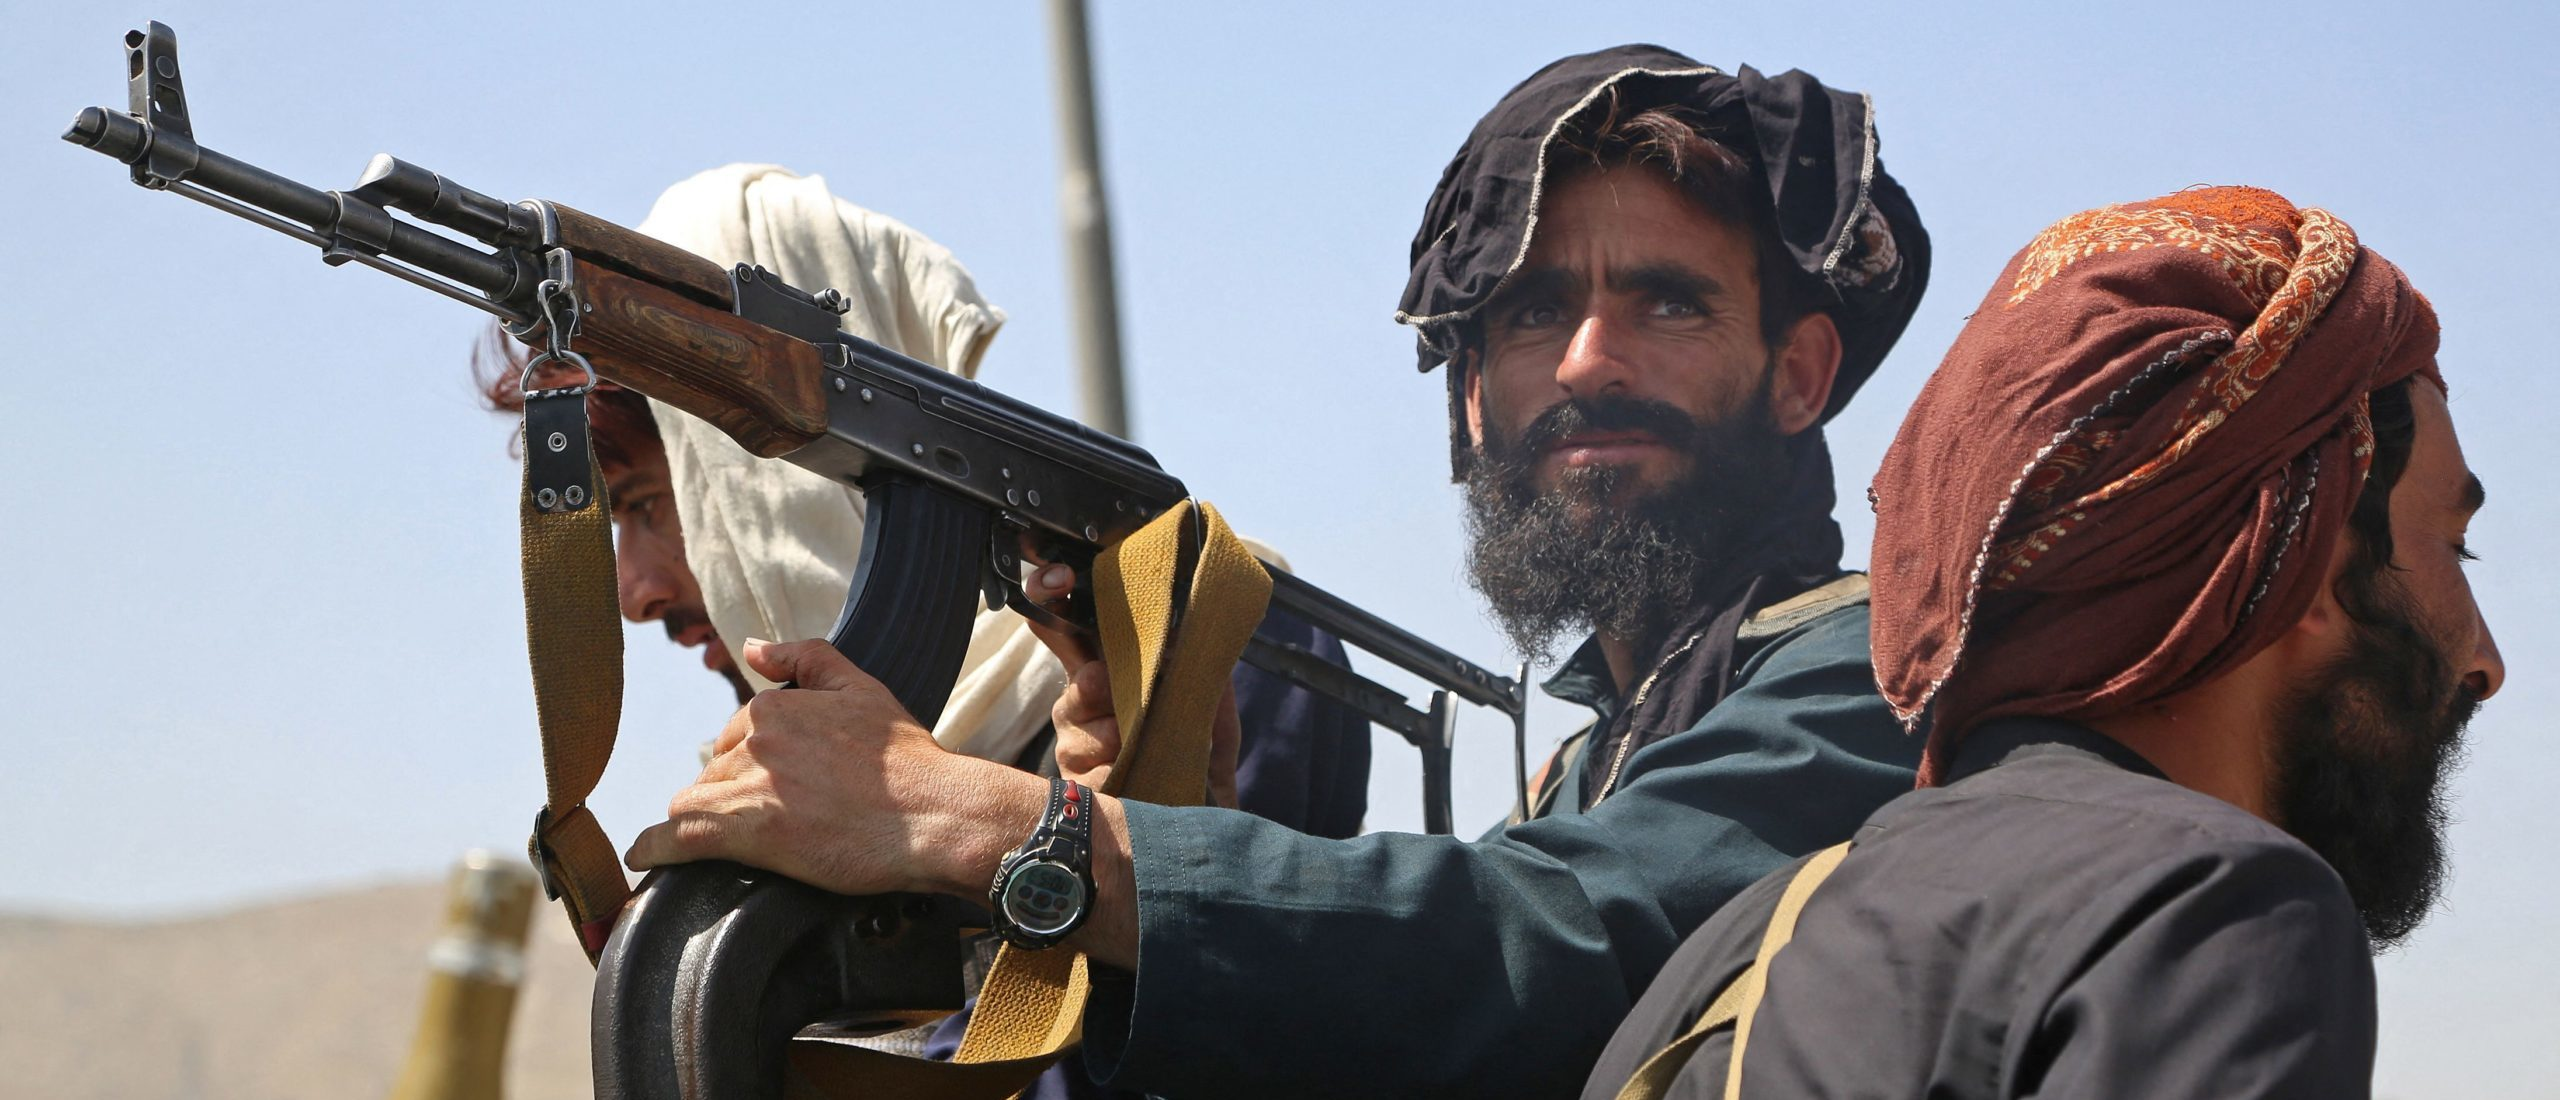 Taliban fighters stand guard in a vehicle along the roadside in Kabul on Monday. (AFP via Getty Images)